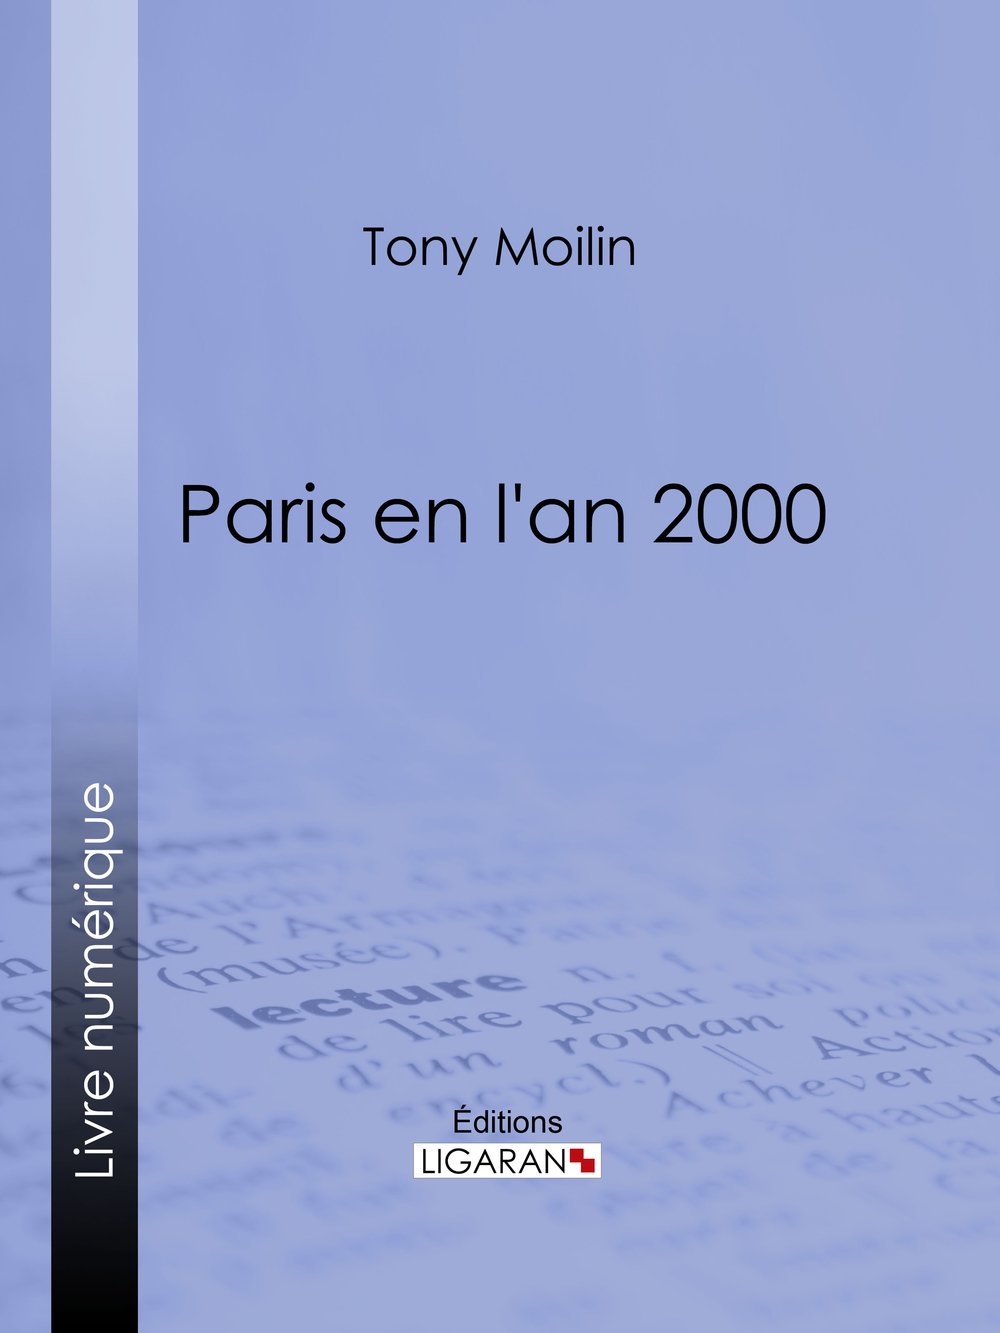 Paris en l'an 2000